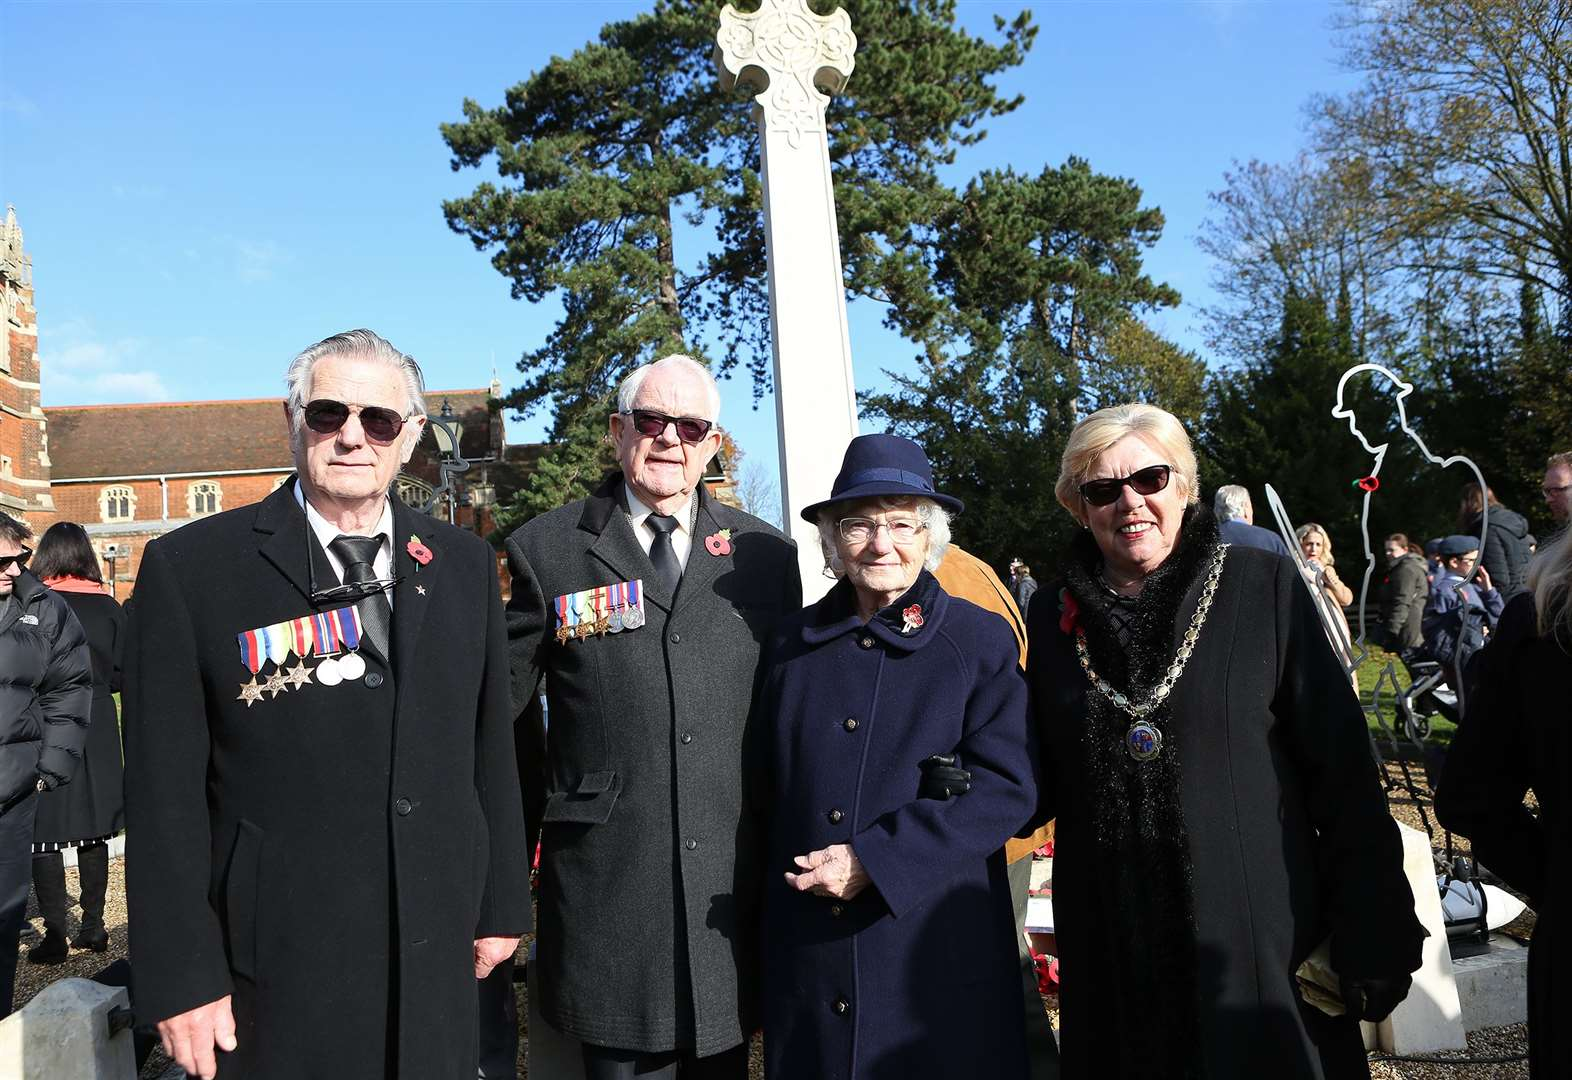 Stansted remembrance picture gallery: Siblings reunite to honour father Herbert